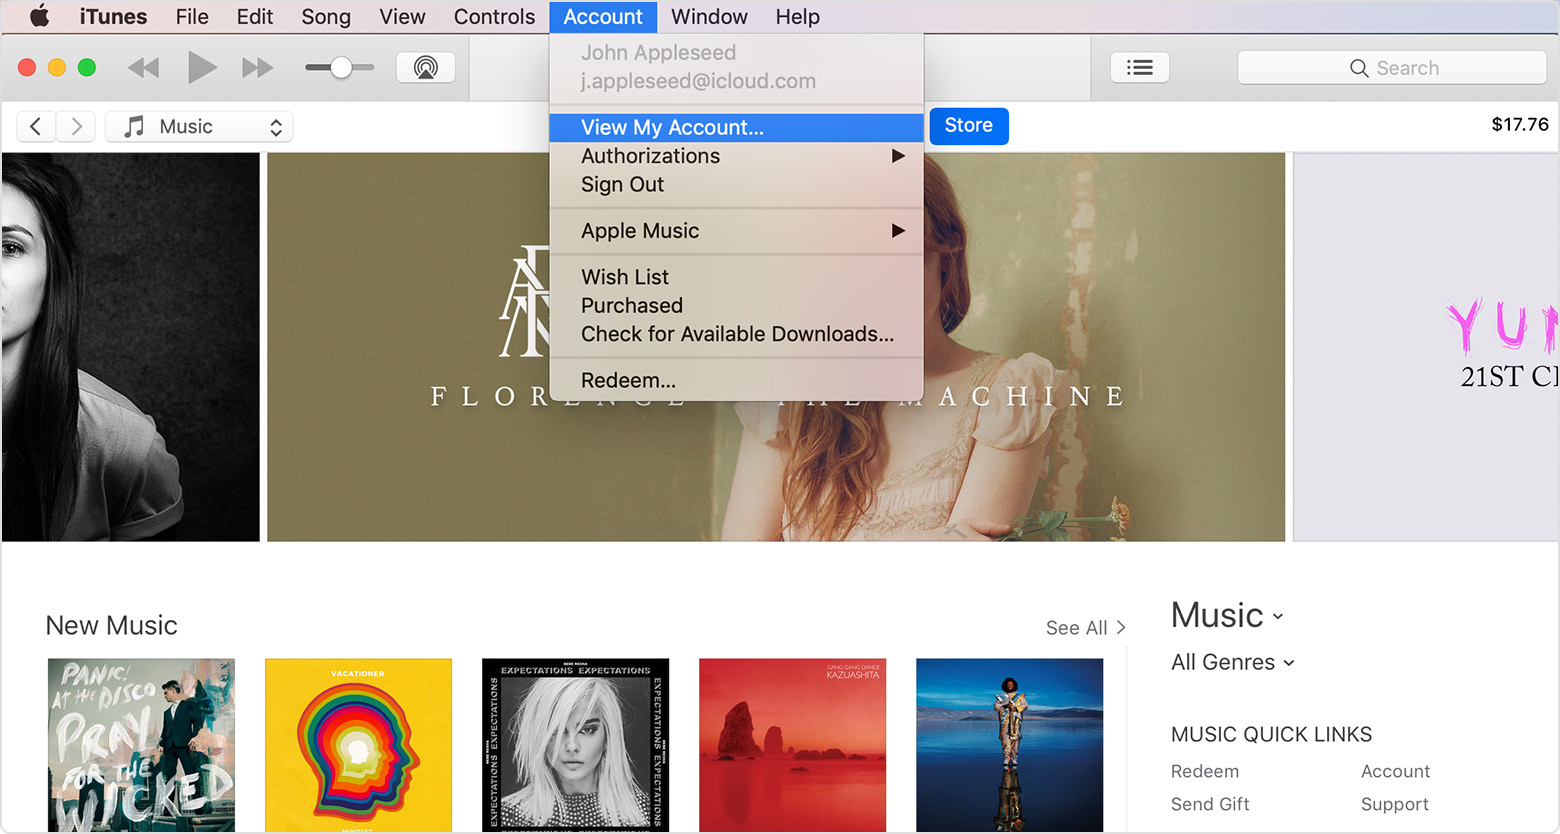 An iTunes window with the Account menu open in the foreground. View My Account is selected.